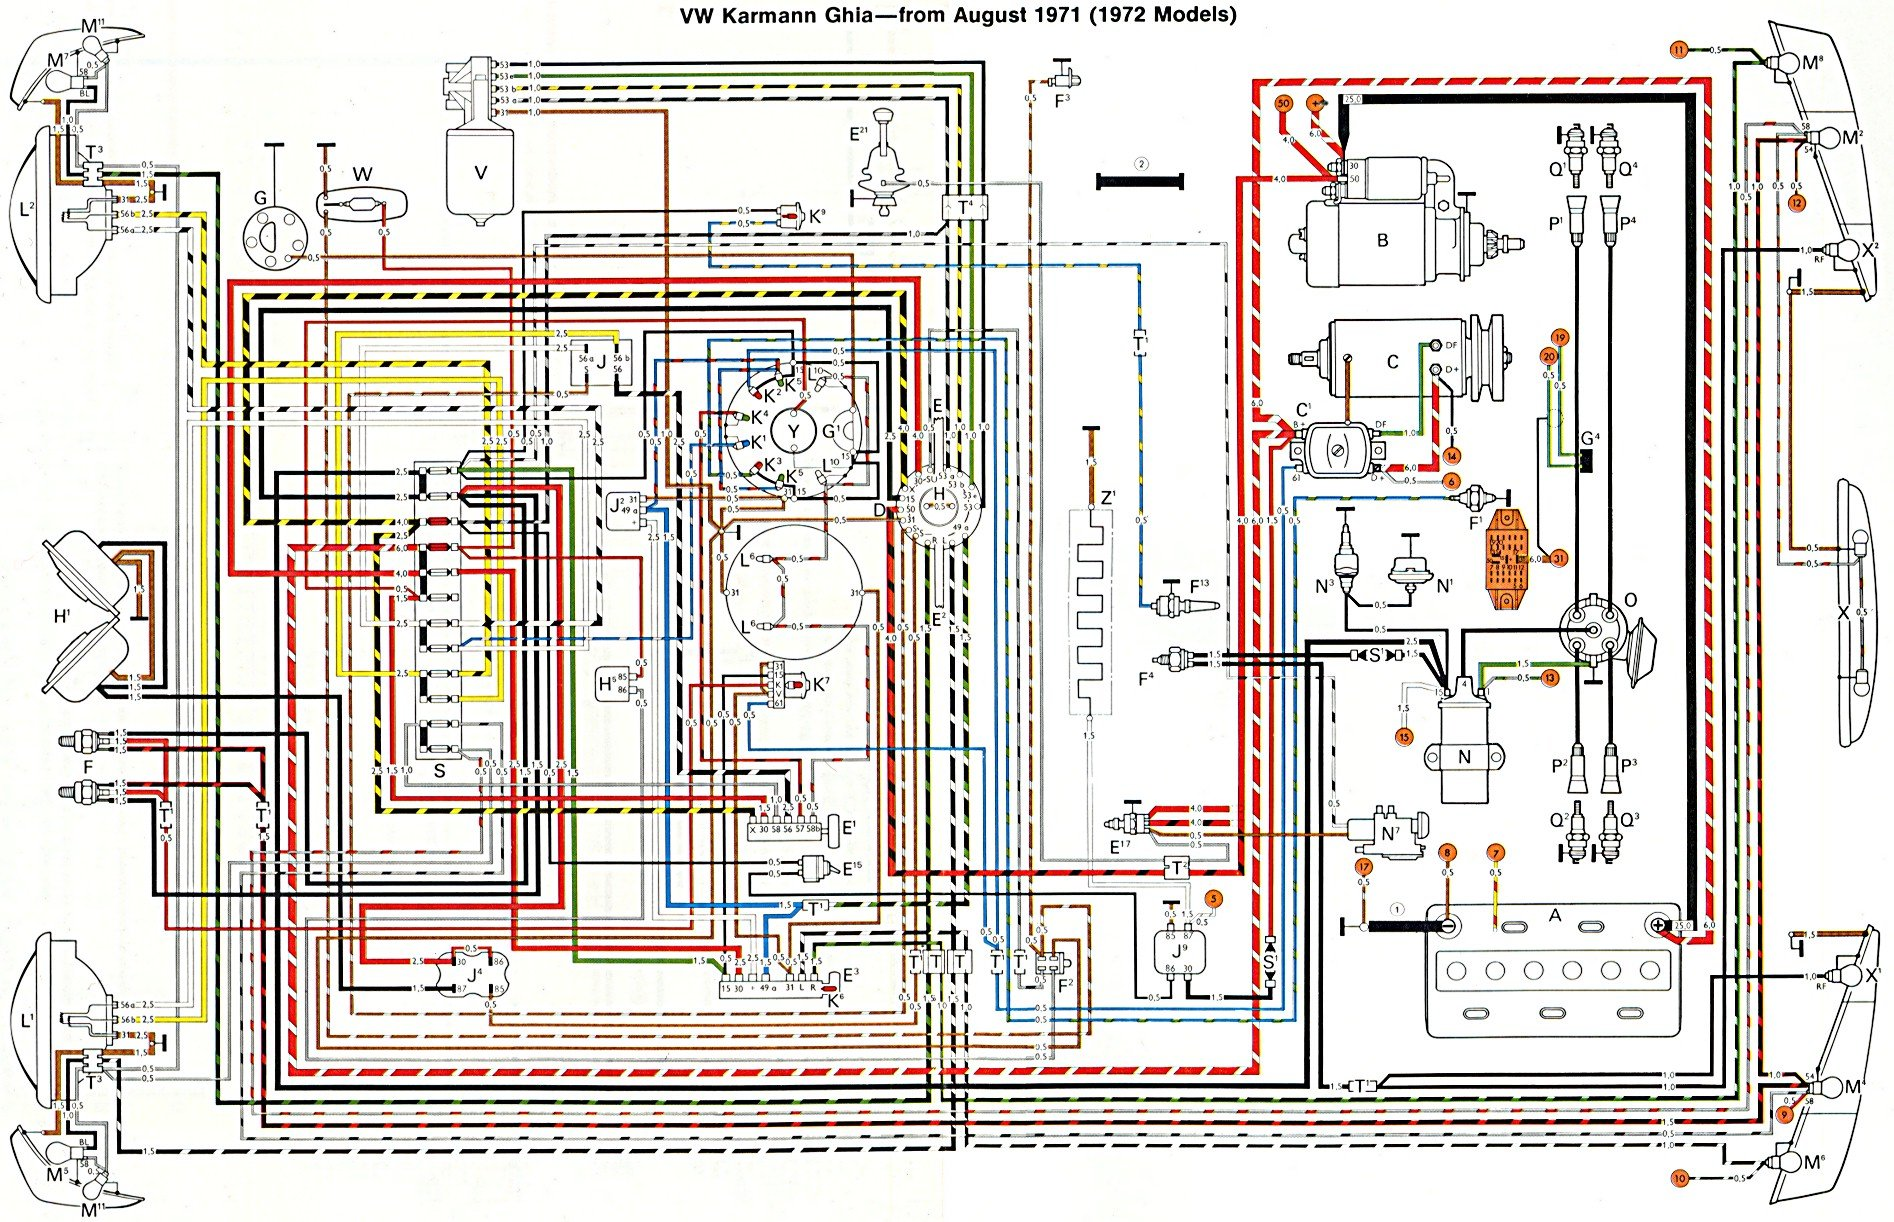 72ghia 1974 porsche 911 wiring diagram porsche 930 turbo fuse diagram 1967 porsche 911 wiring diagram at creativeand.co